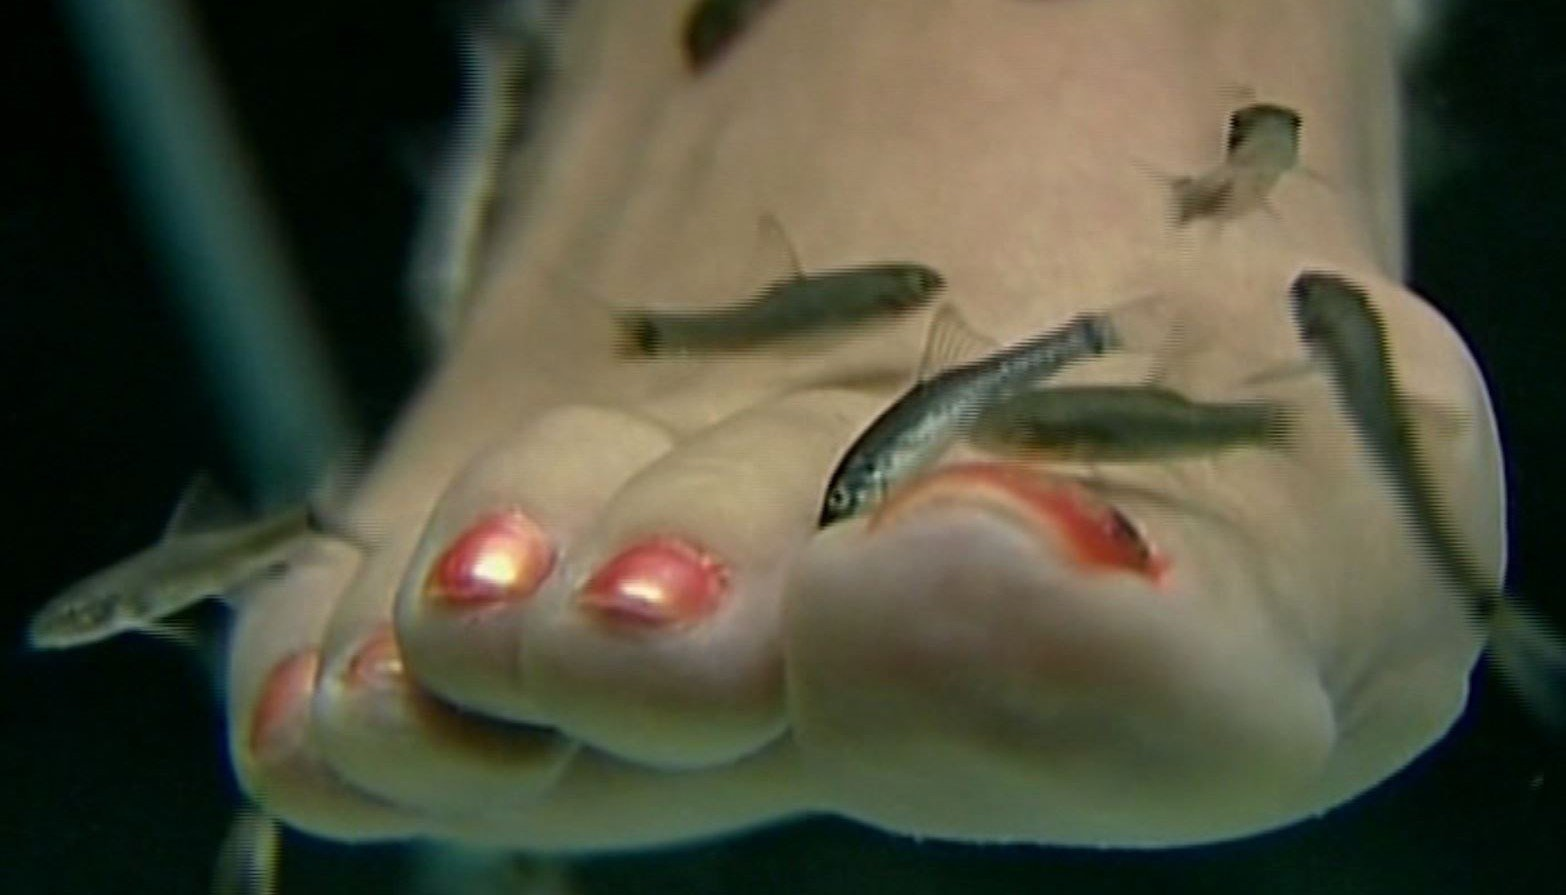 Fish Pedicure Blamed for Woman's Toenails Falling Off